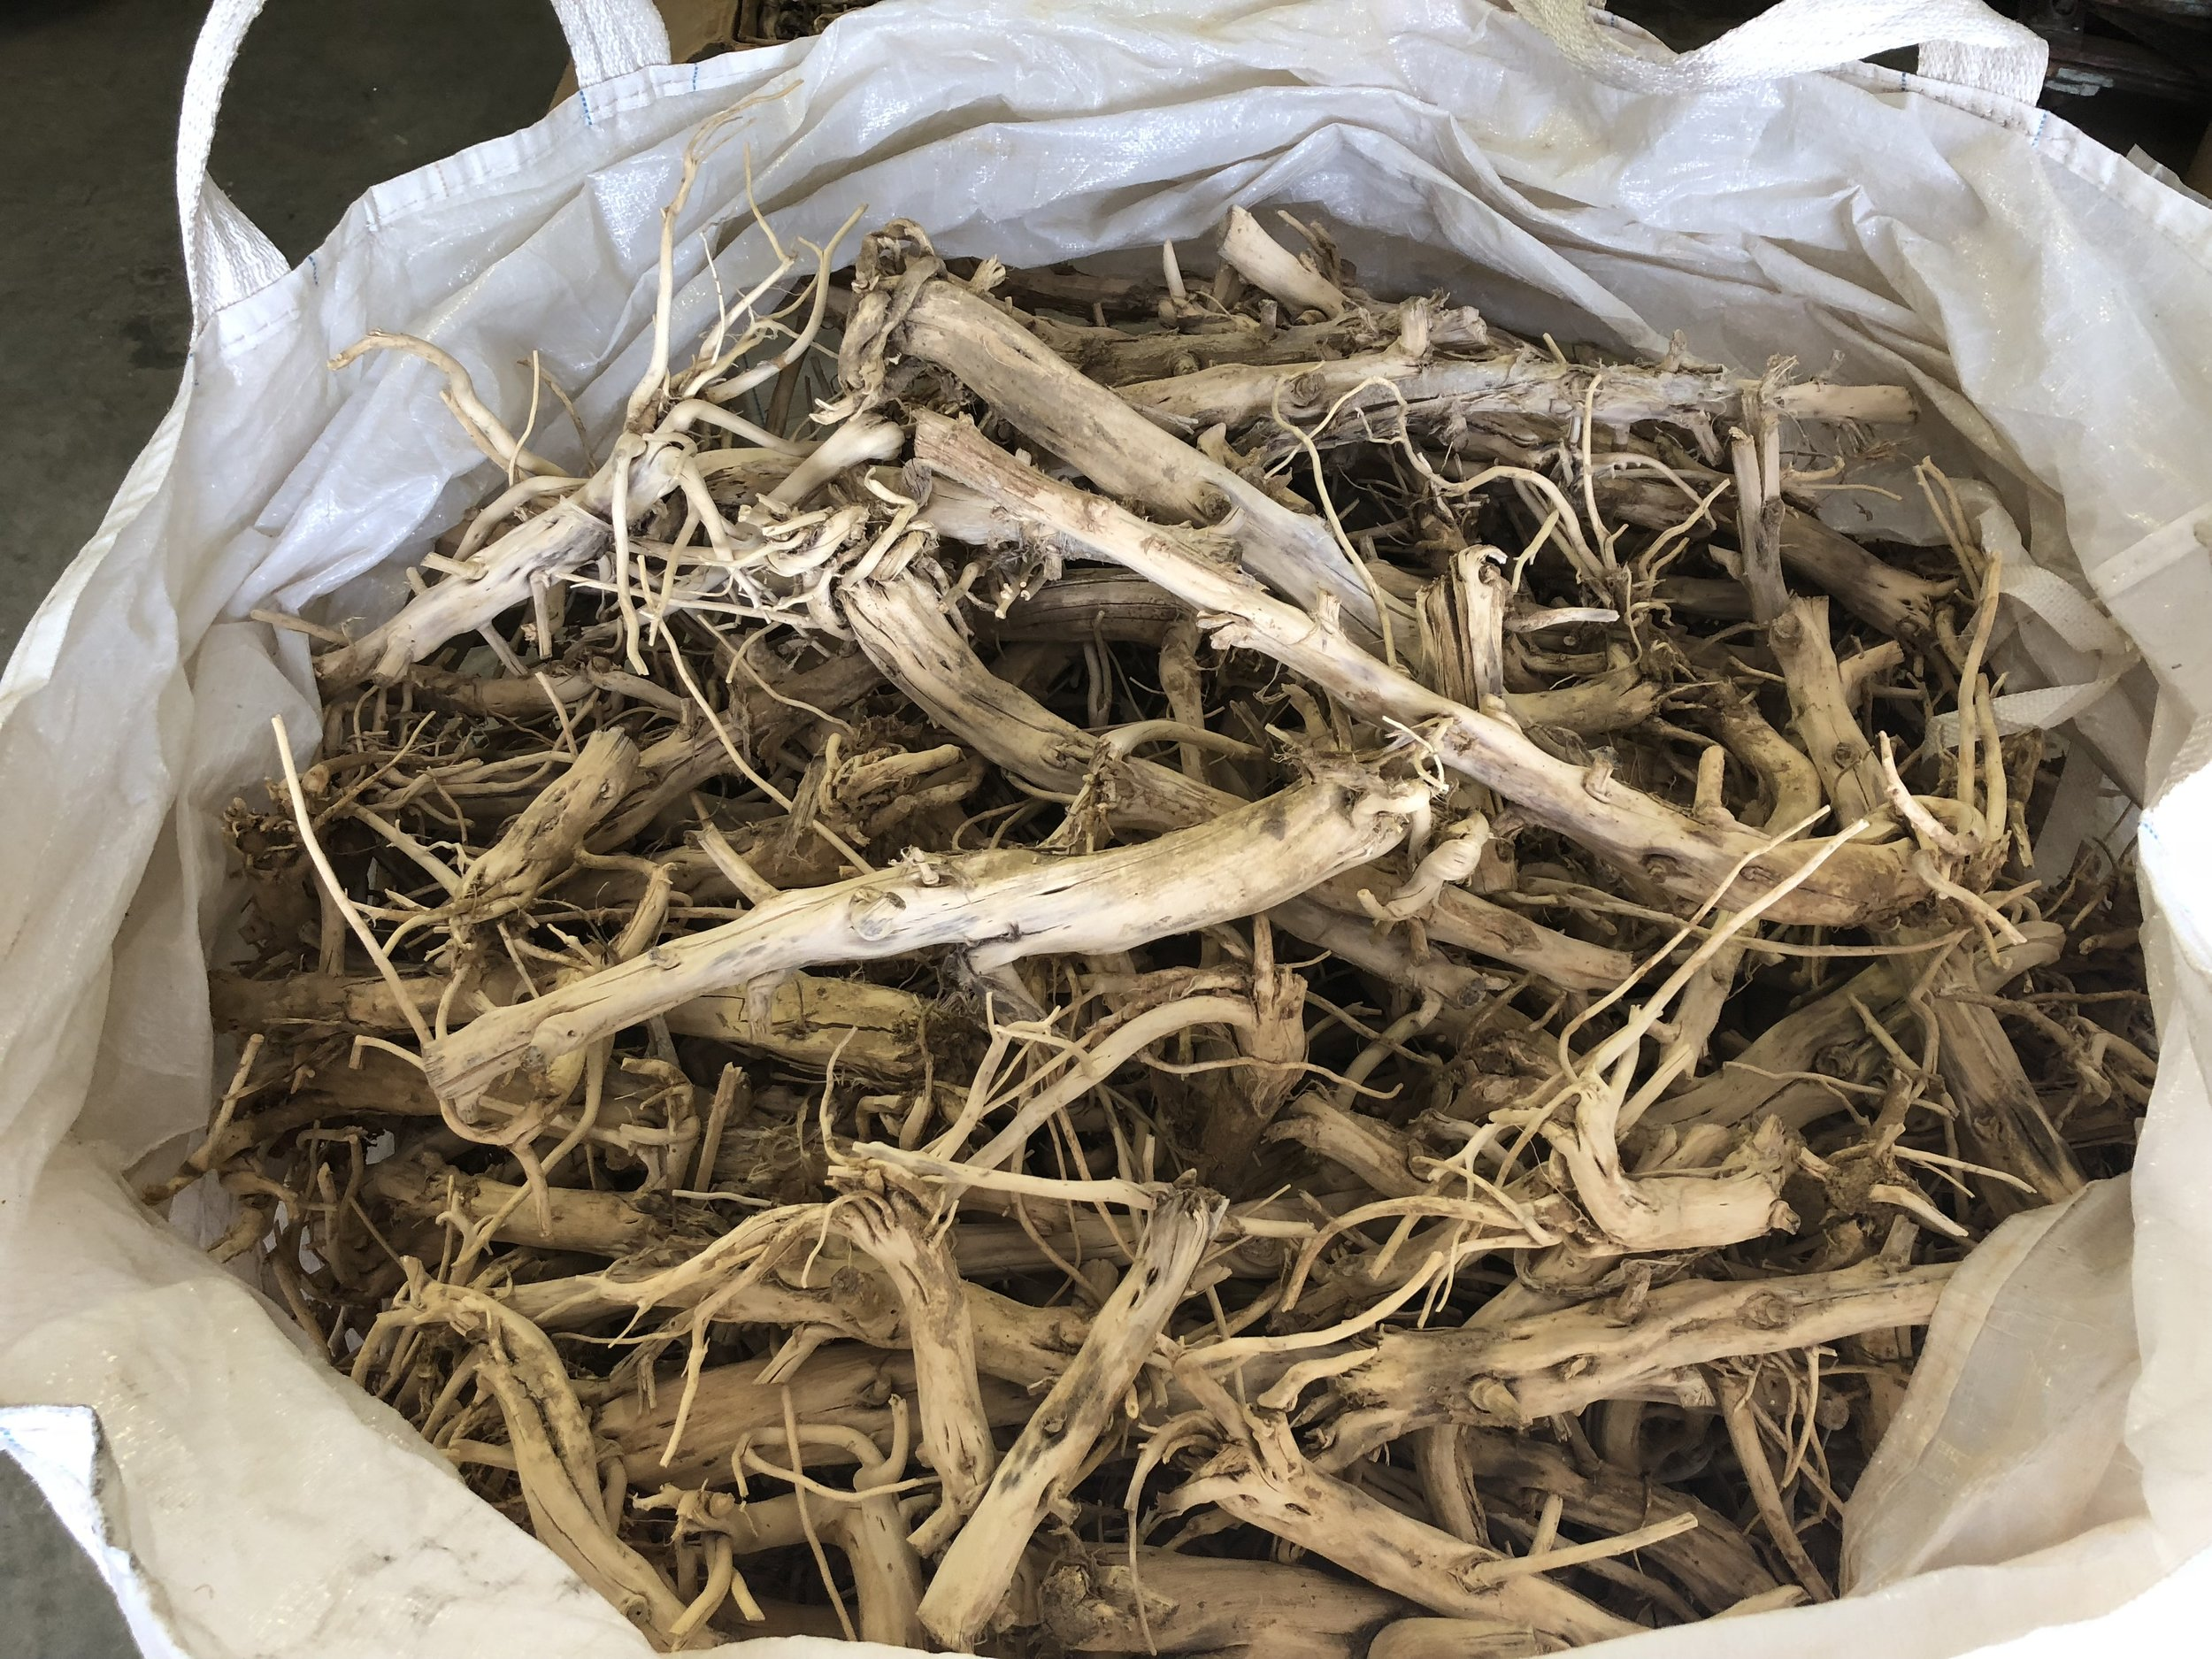 These roots will be utilized to formulate skin care products.